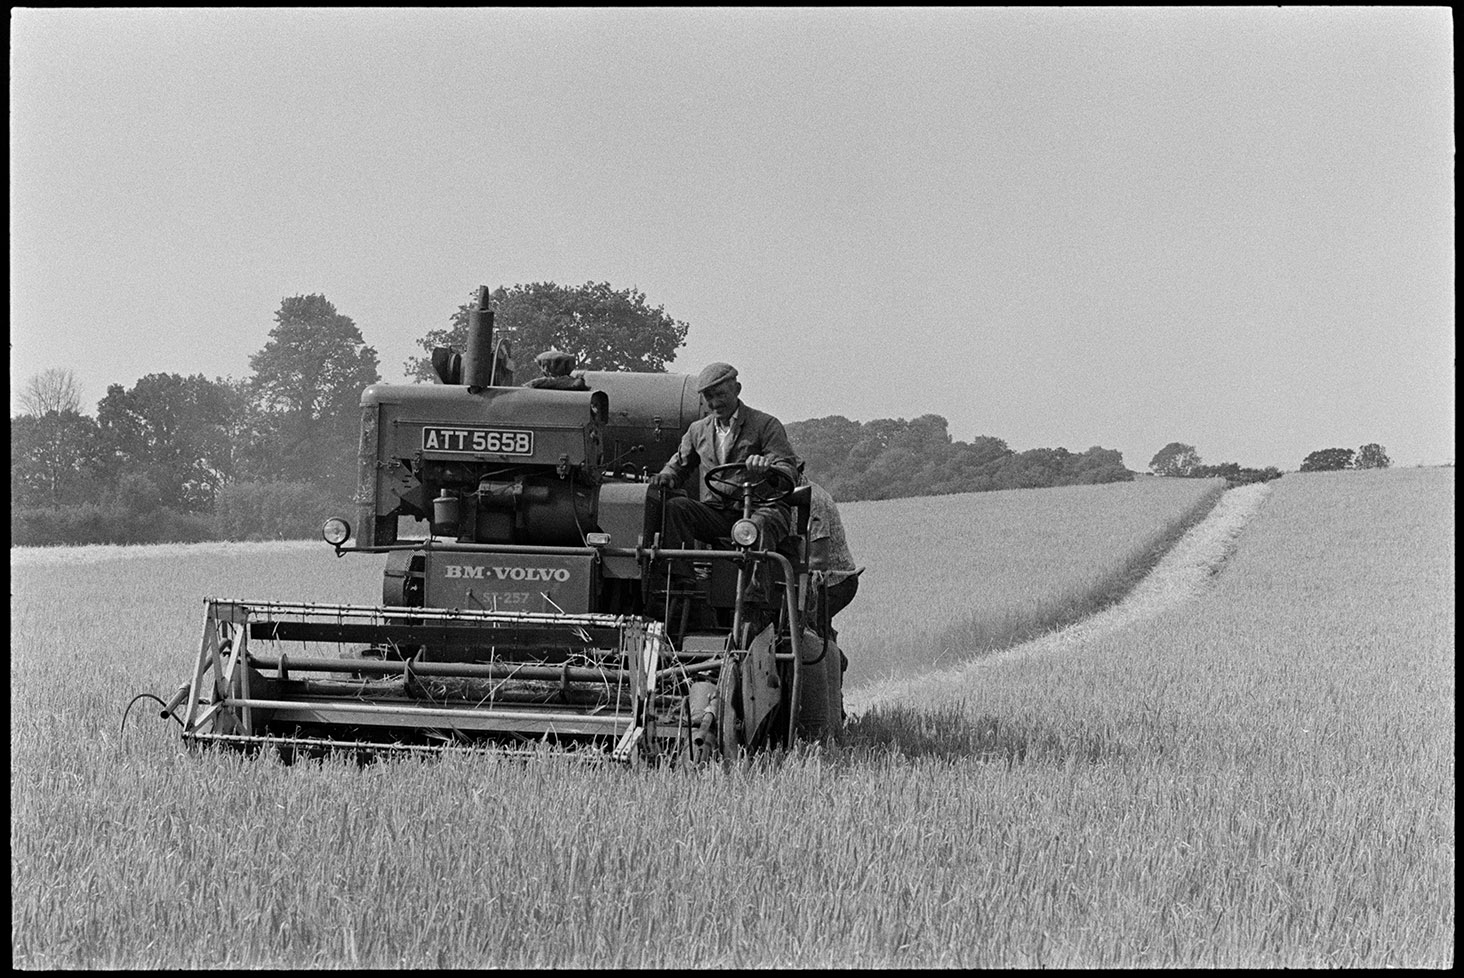 Loading sacks of corn from combine harvester, Iddesleigh, Parsonage, August 1976. Documentary photograph by James Ravilious for the Beaford Archive © Beaford Arts